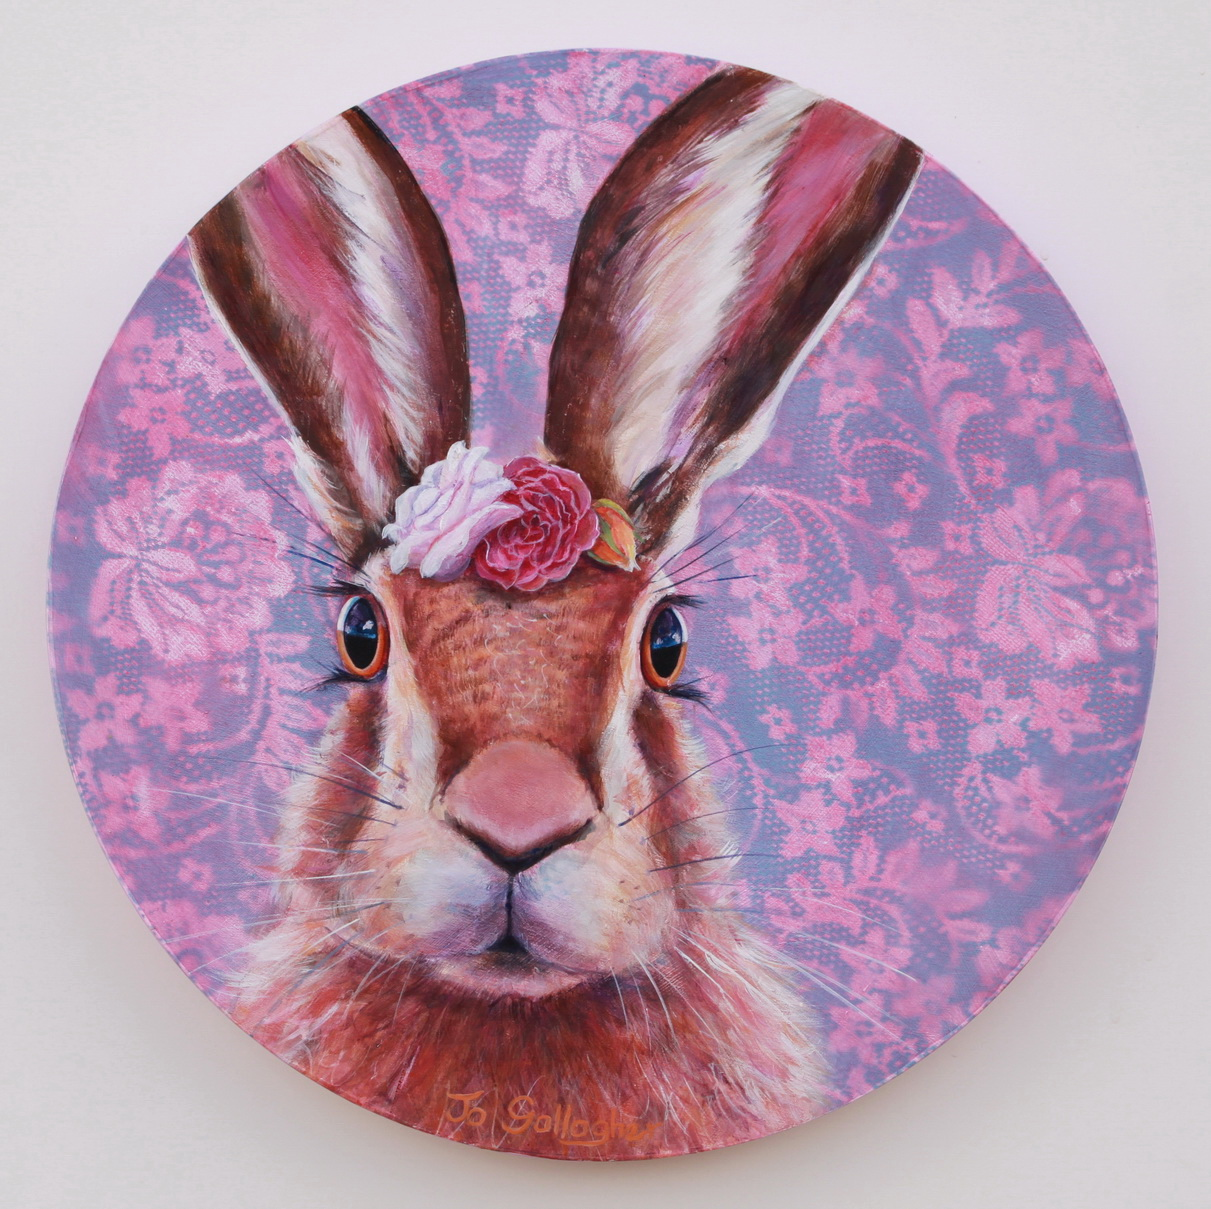 Flowers in my Hare 400mm acrylic on plywood board SOLD